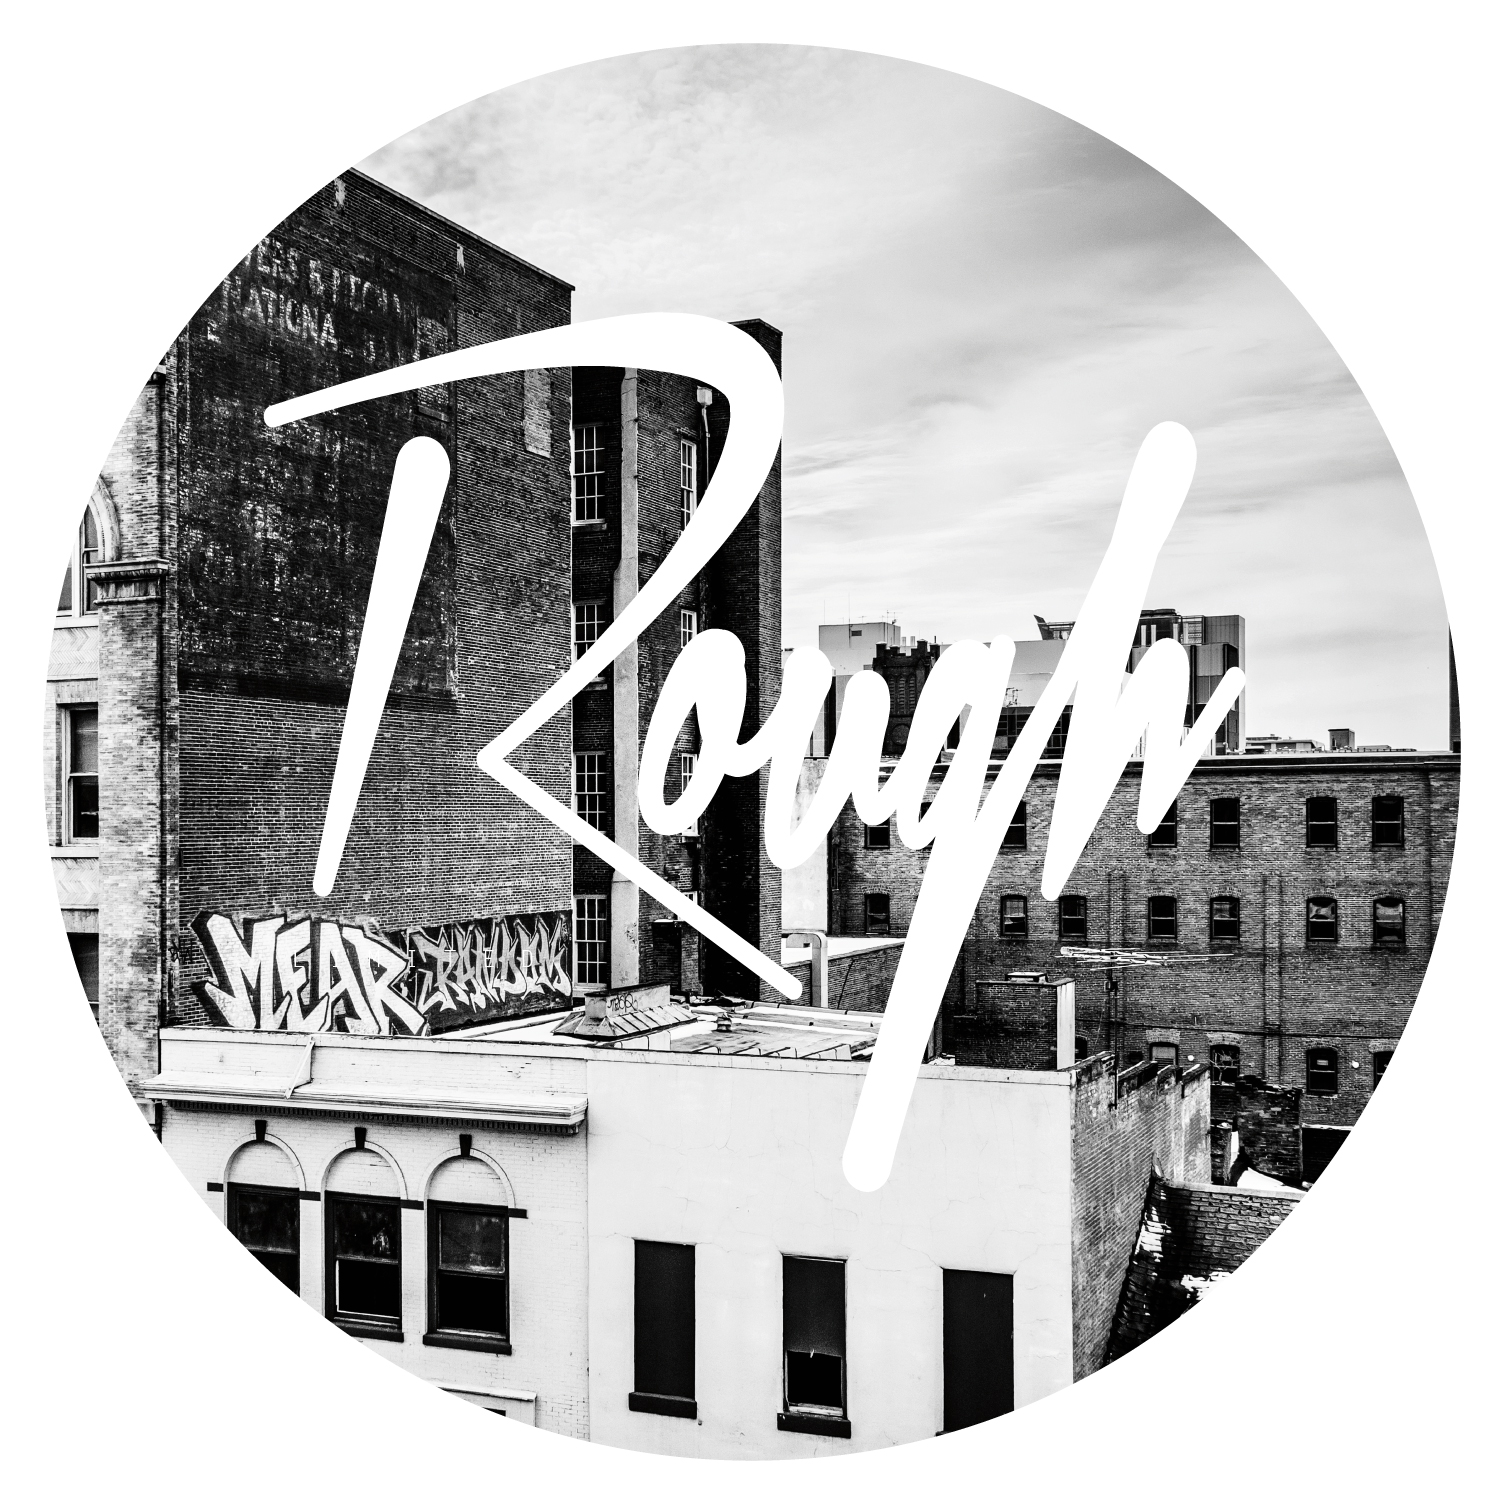 https://www.rough-recordings.com/wp-content/uploads/ROUGHLTD009_A.jpg